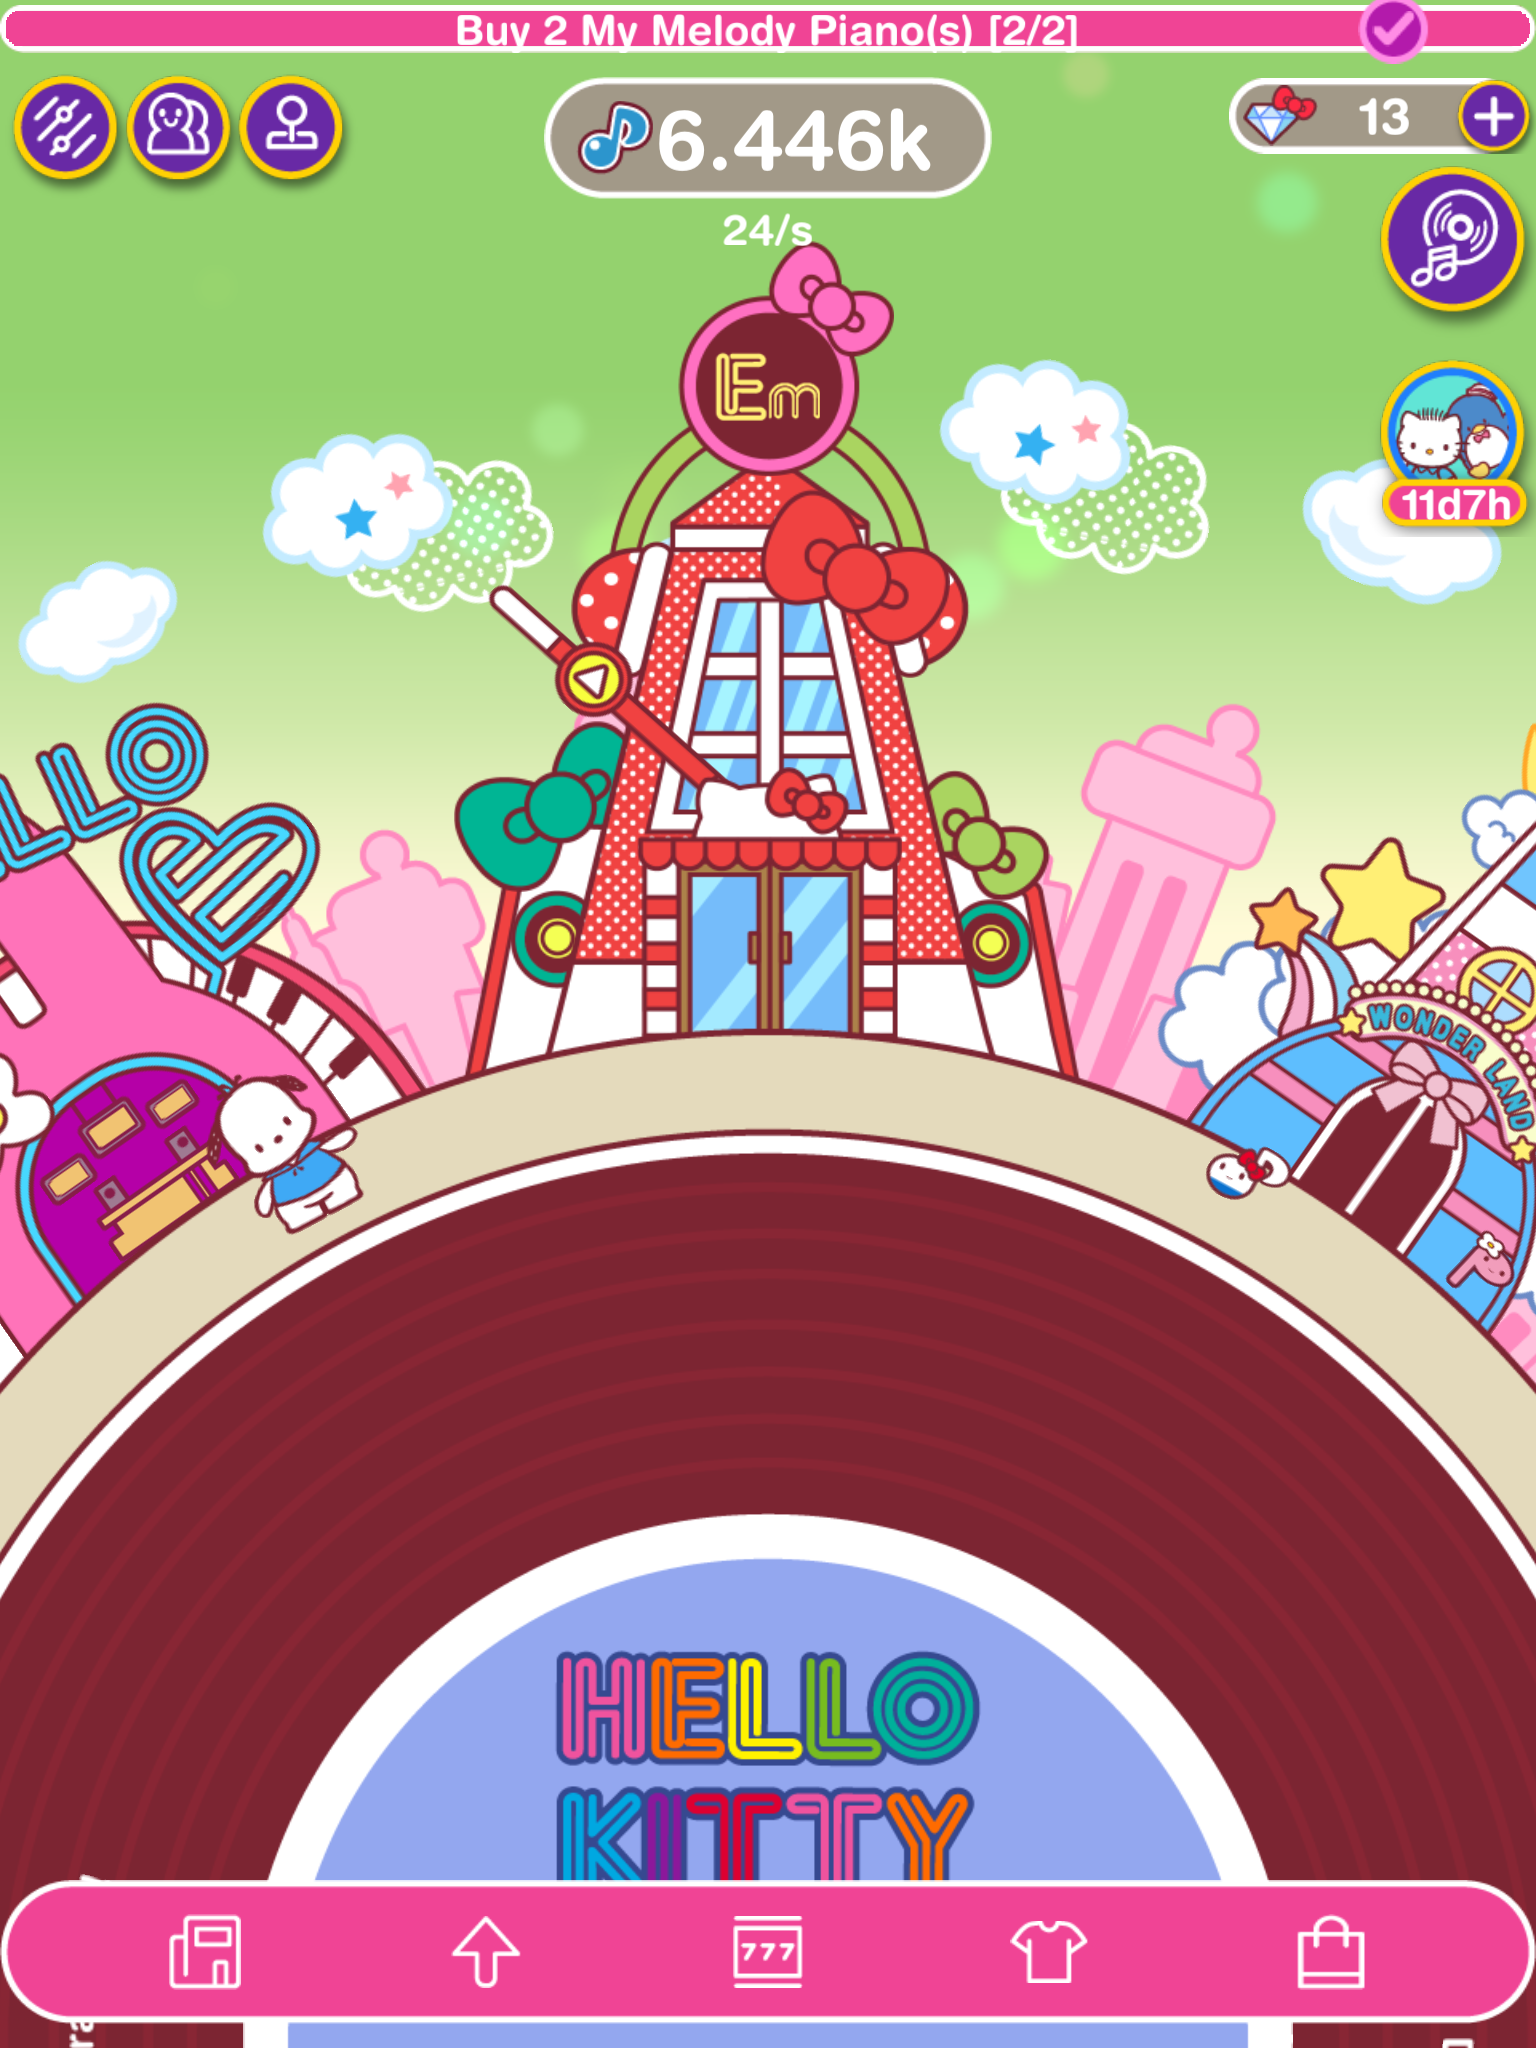 Hello Kitty Music Party review - An uninspired rhythm-based idle clicker